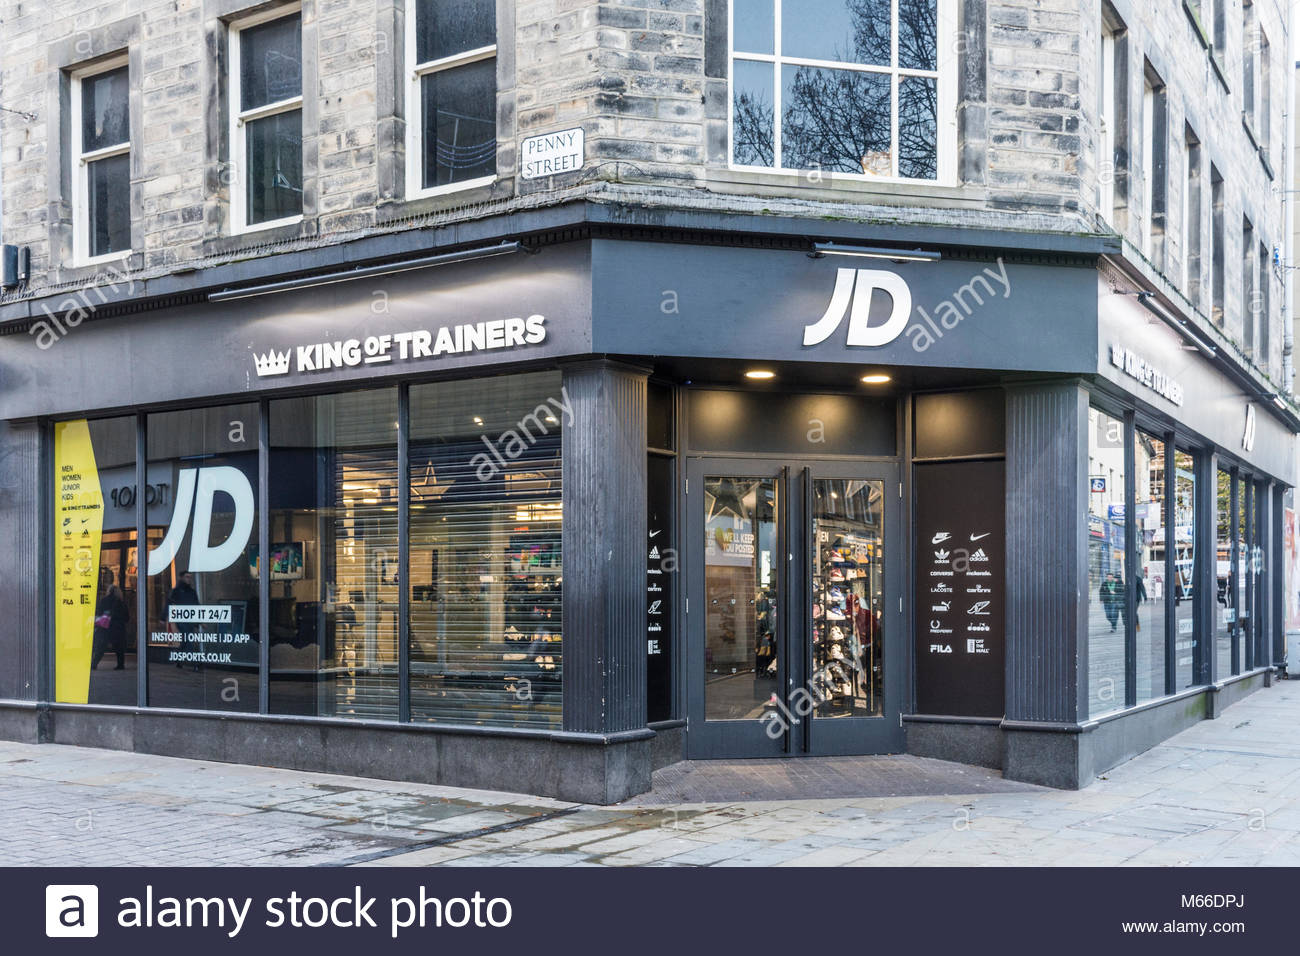 JD Trainers / JD Sports shop on the